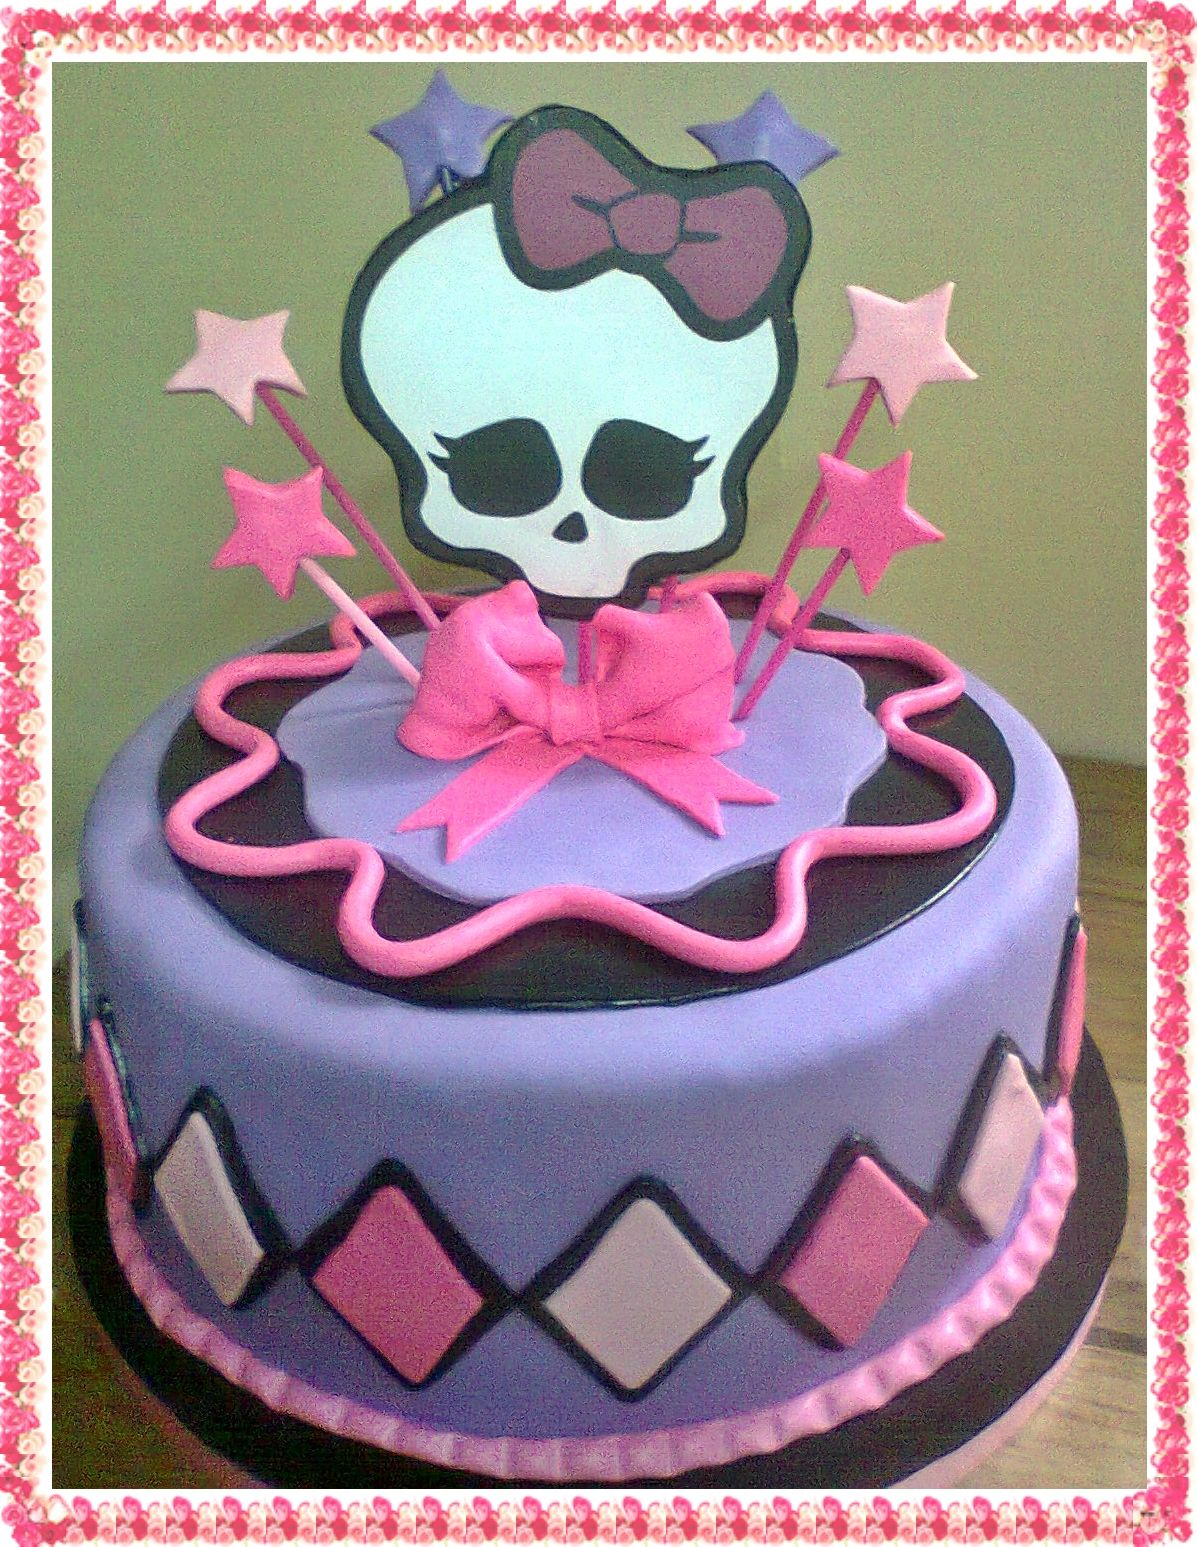 torta de monster high | Tortas de Monster High | Pinterest ...